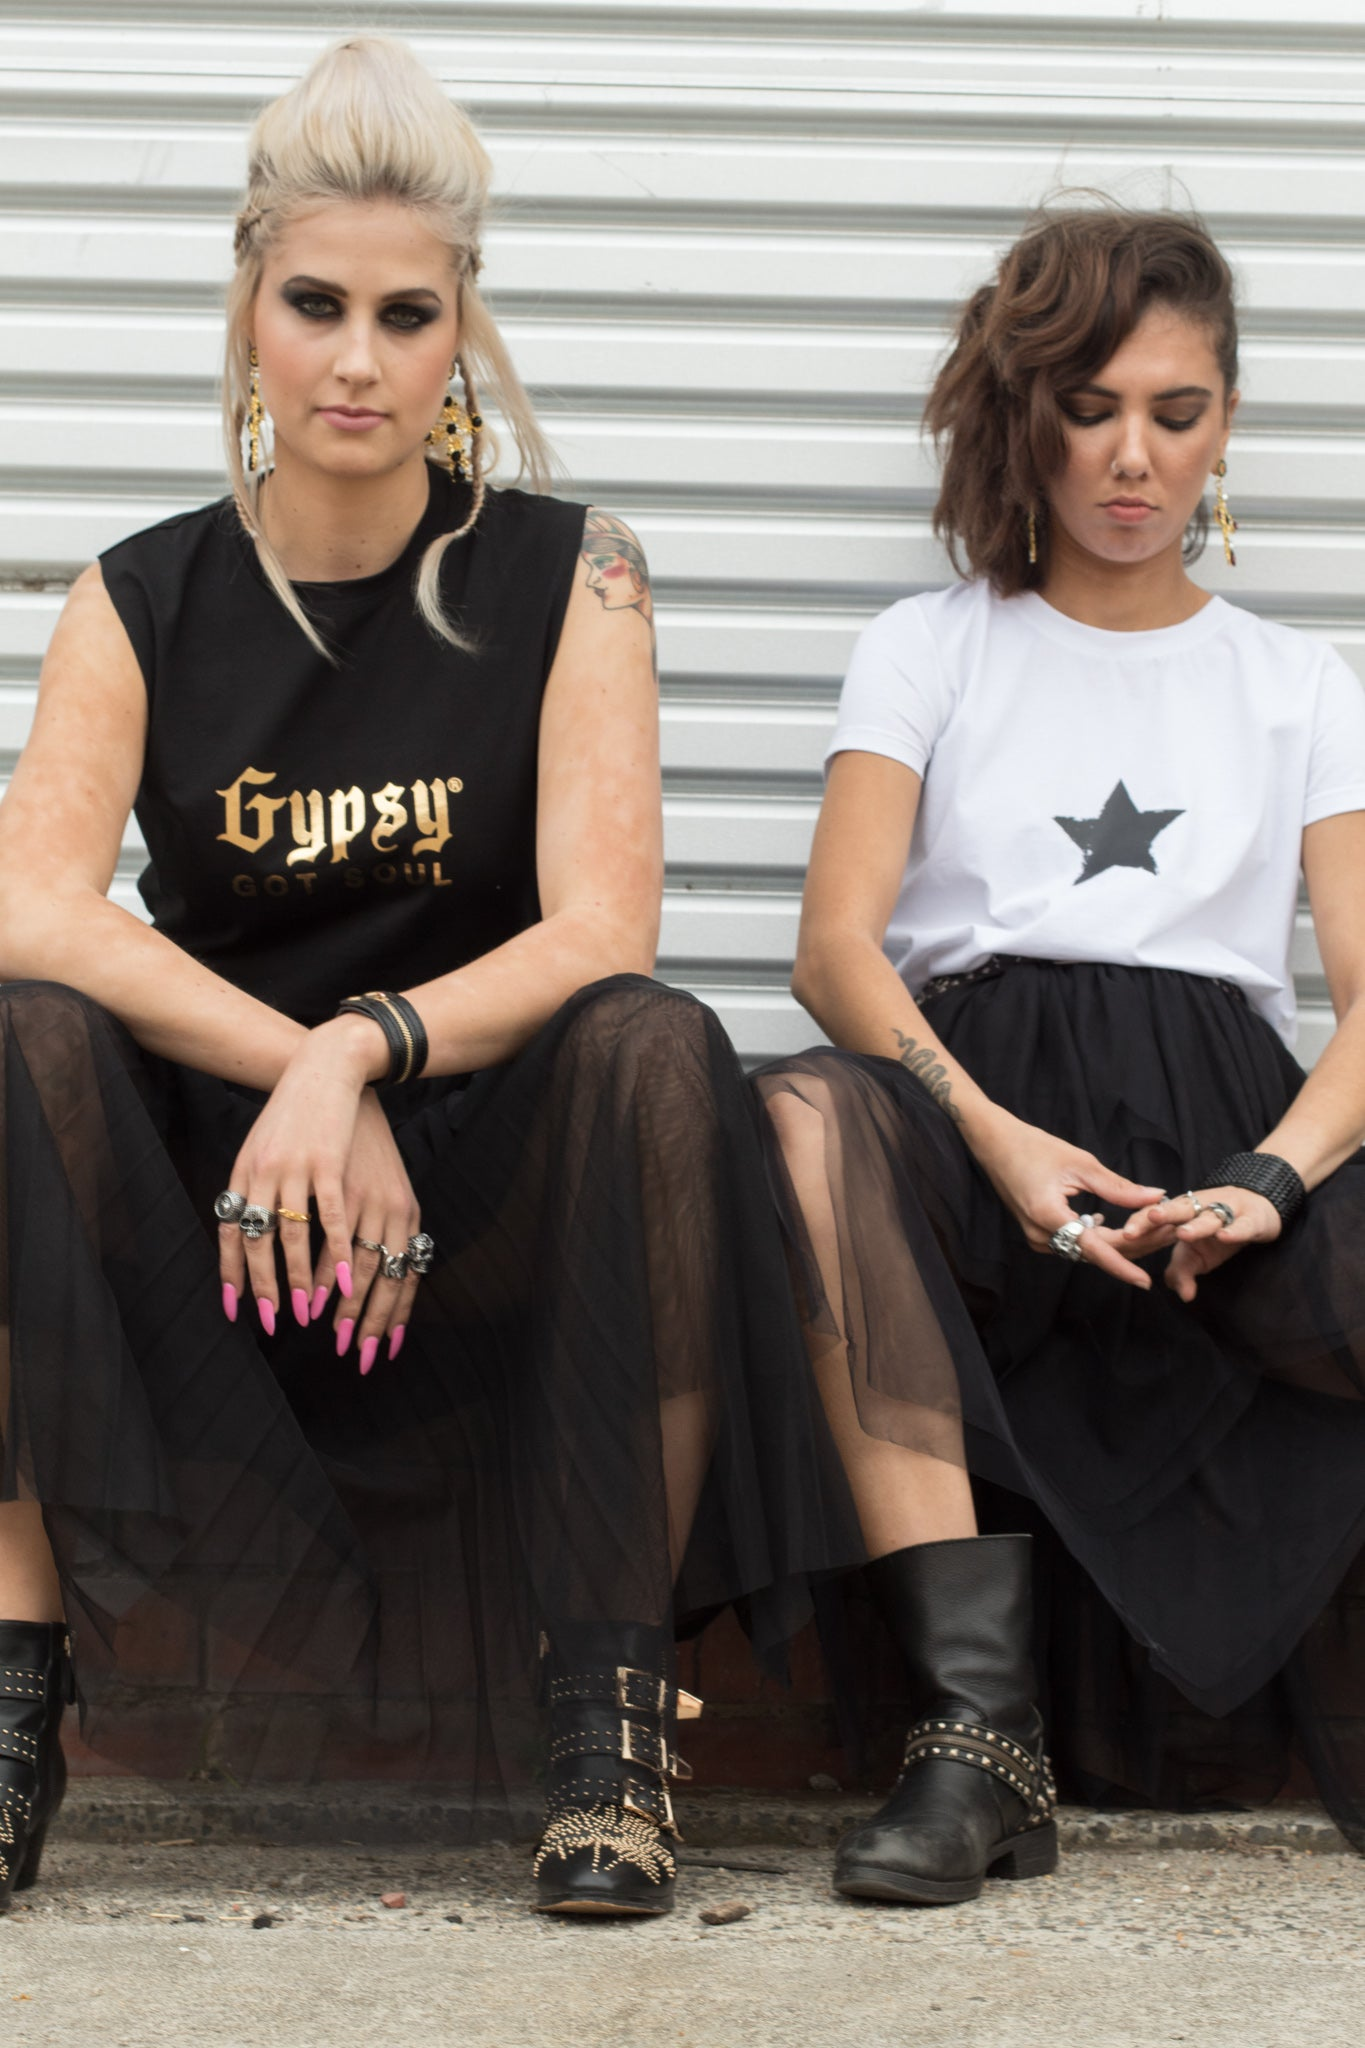 Gypsy Got Soul Black Sleeveless Tee